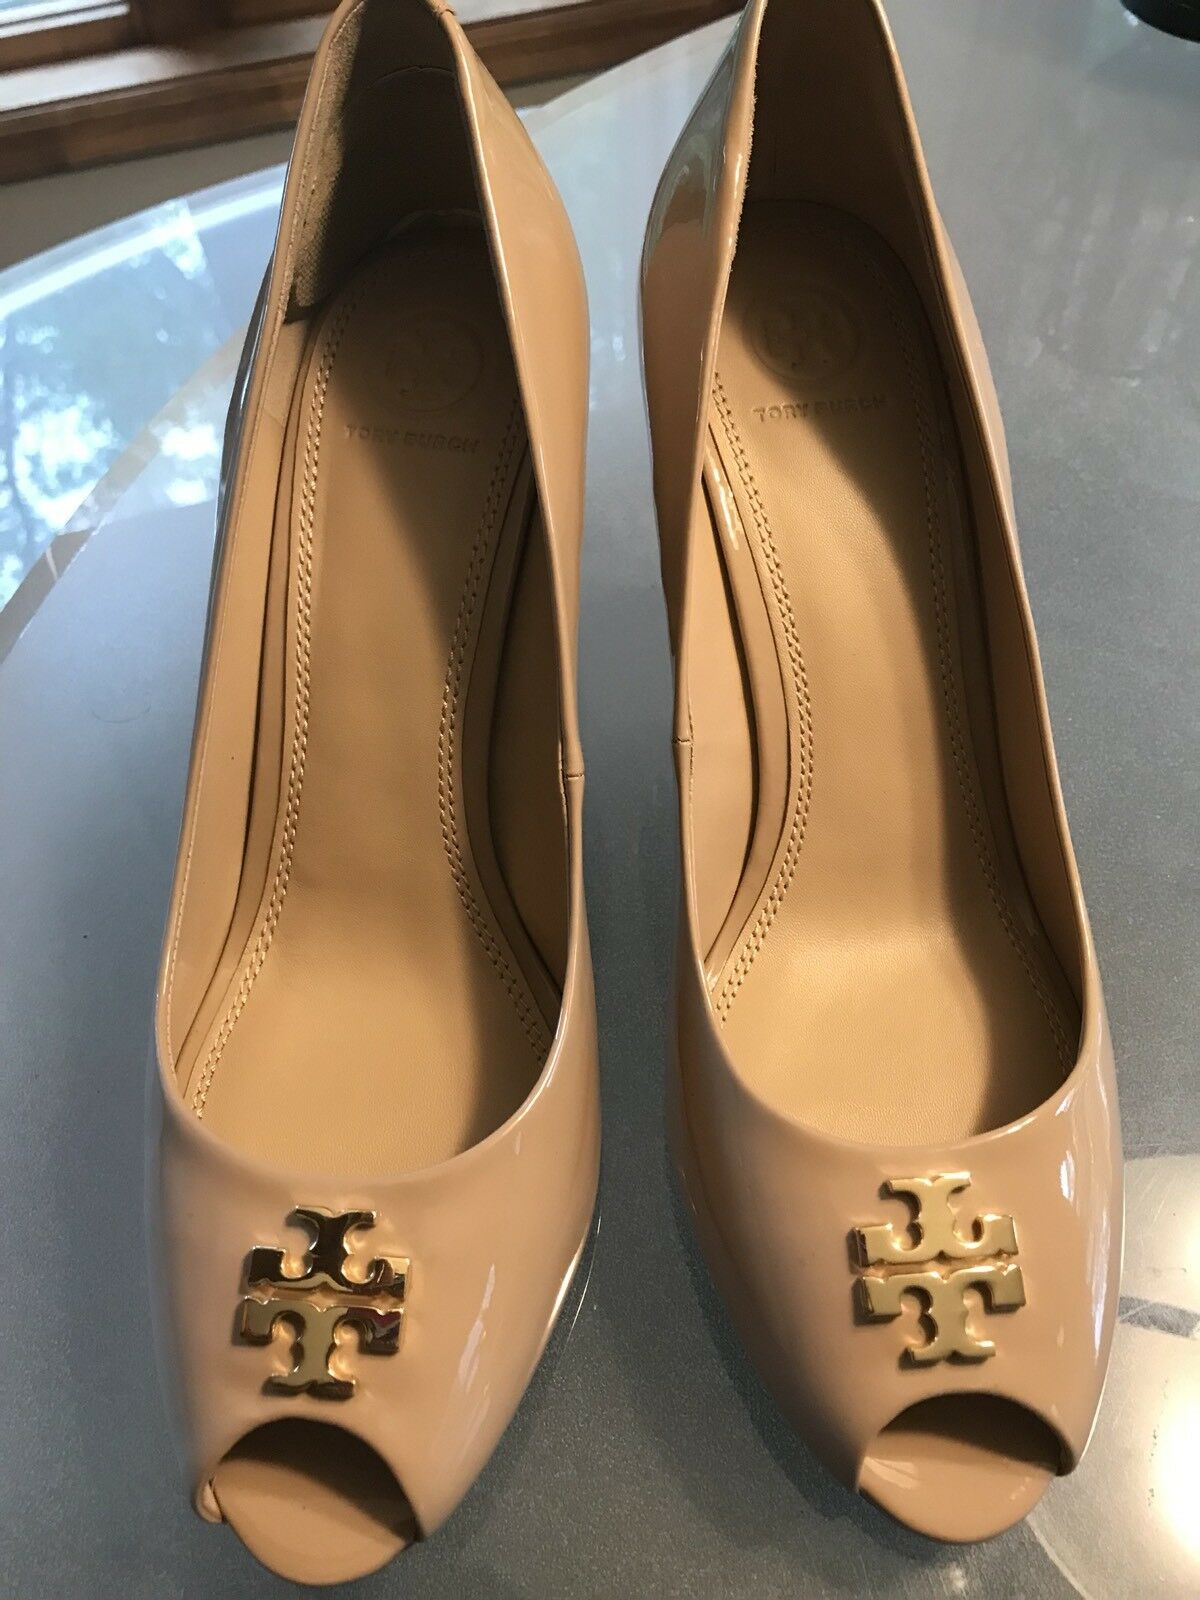 Tory Burch Jade Peep Toe Wedge Burnt Almond 11M 11M 11M msrp  285 8f97e1